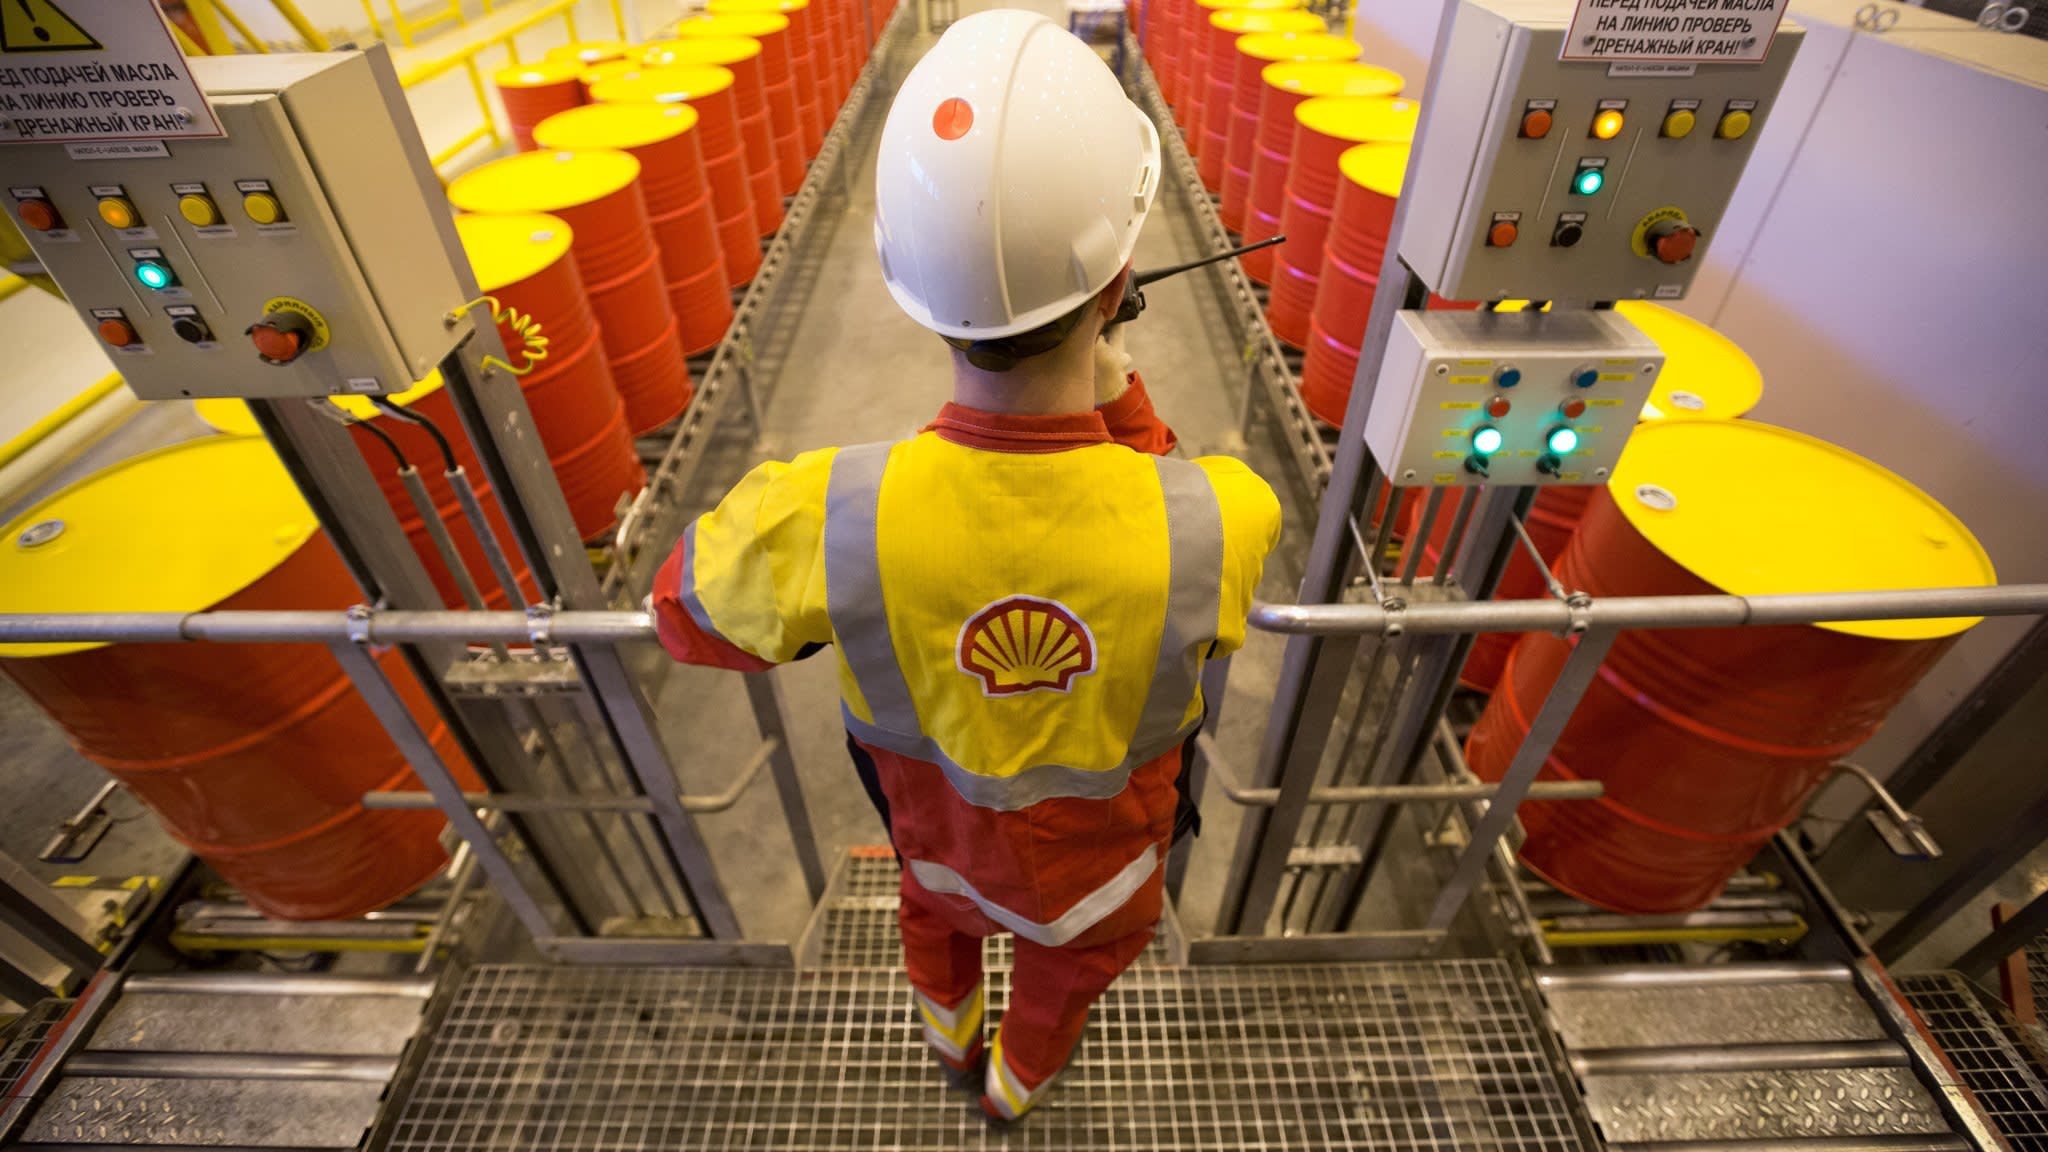 Shell yields to investors by setting target on carbon footprint